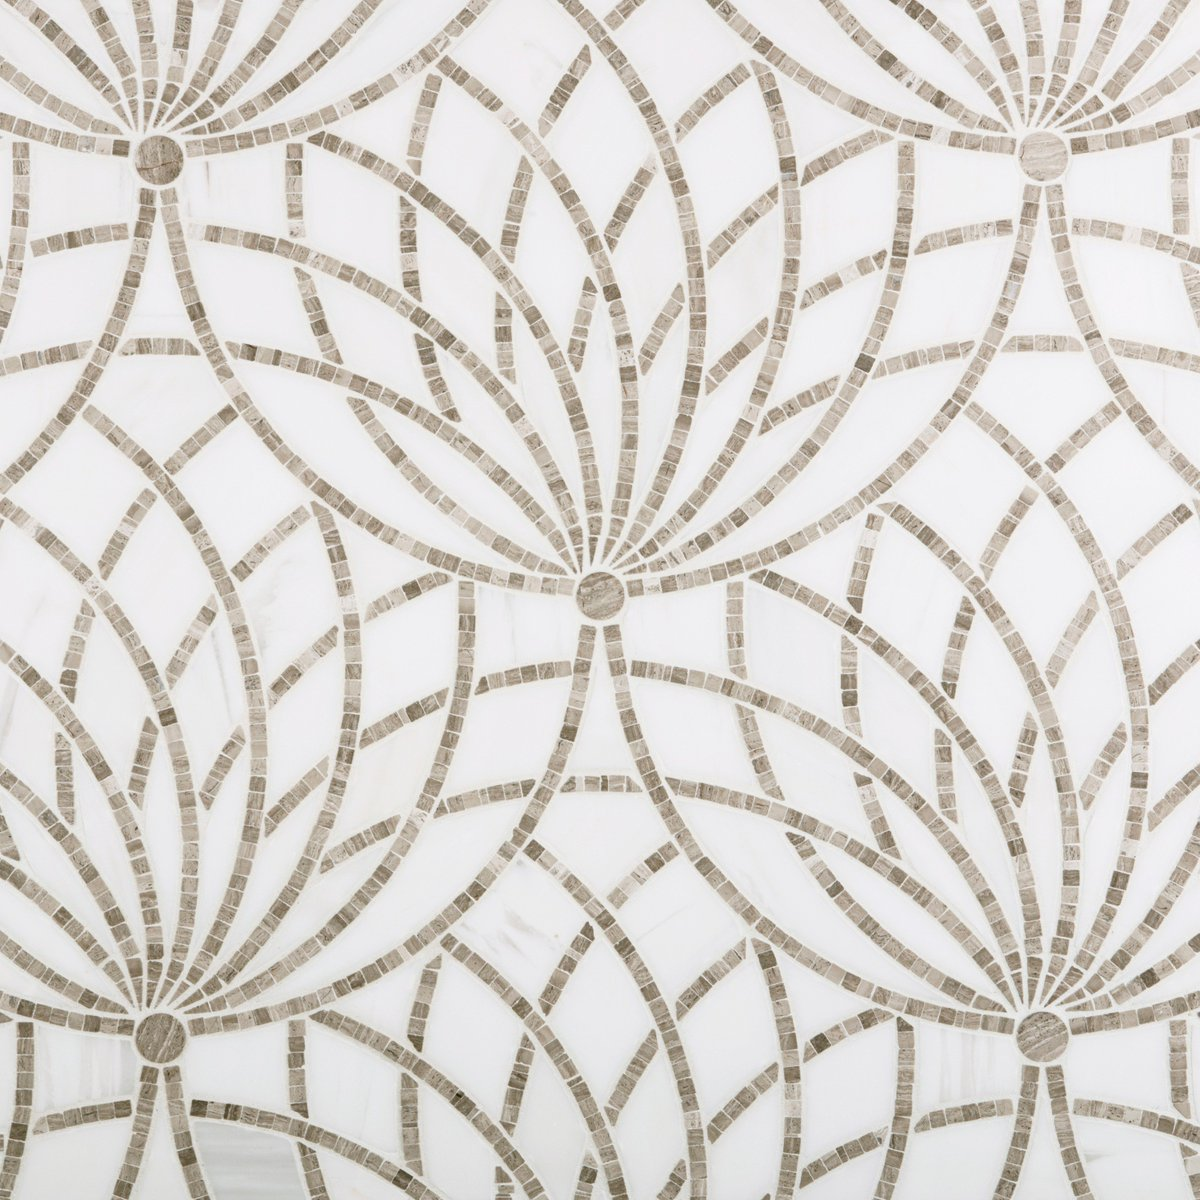 Artistic tile on twitter new luxor our tesserae stone mosaic artistic tile on twitter new luxor our tesserae stone mosaic rendition of the ancient egyptian lotus flower is now in stock in a beautiful grey blend izmirmasajfo